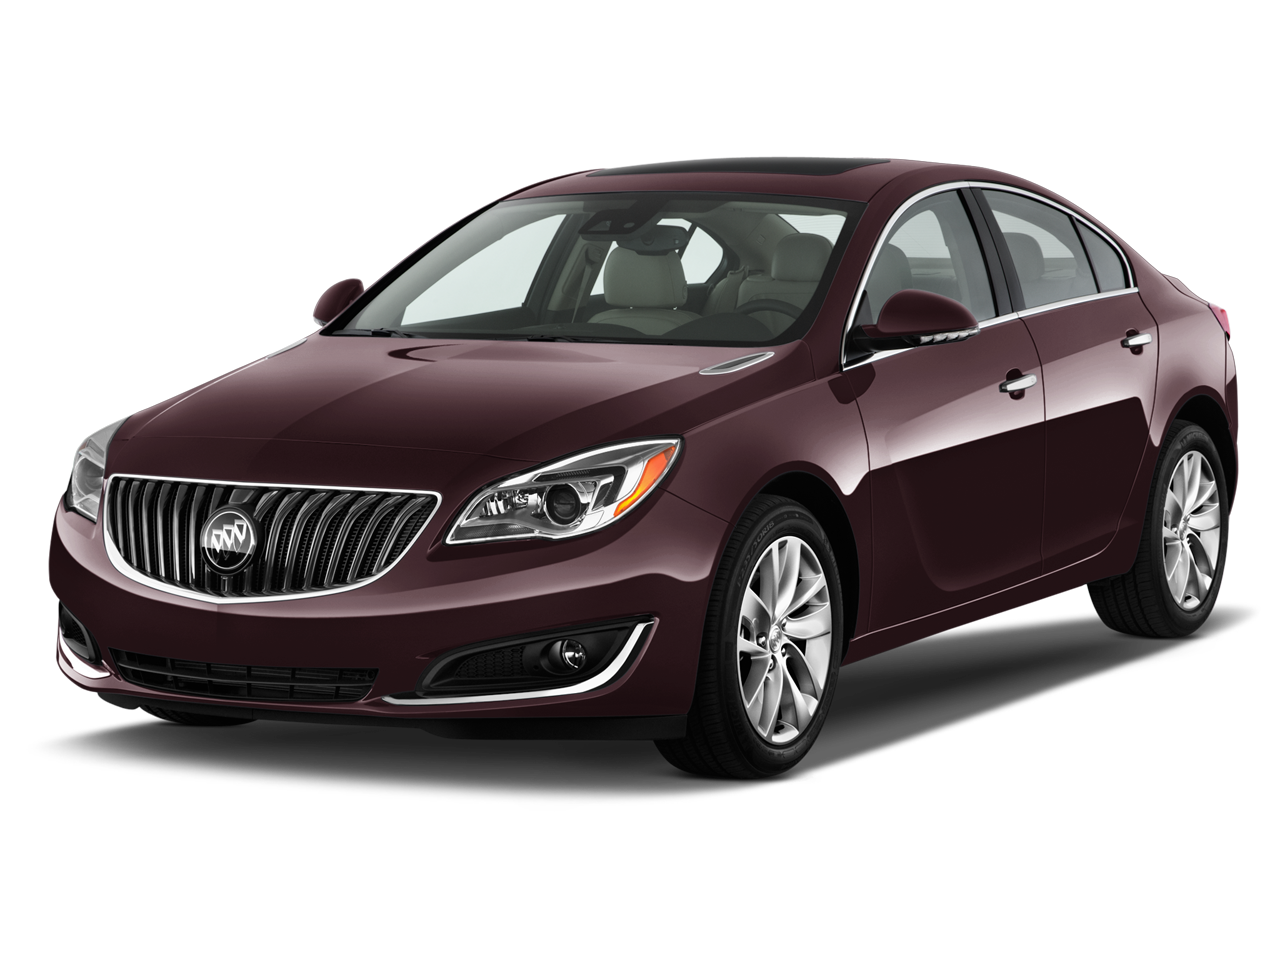 new 2017 buick regal gs near pryor ok roberts chevrolet buick gmc. Black Bedroom Furniture Sets. Home Design Ideas